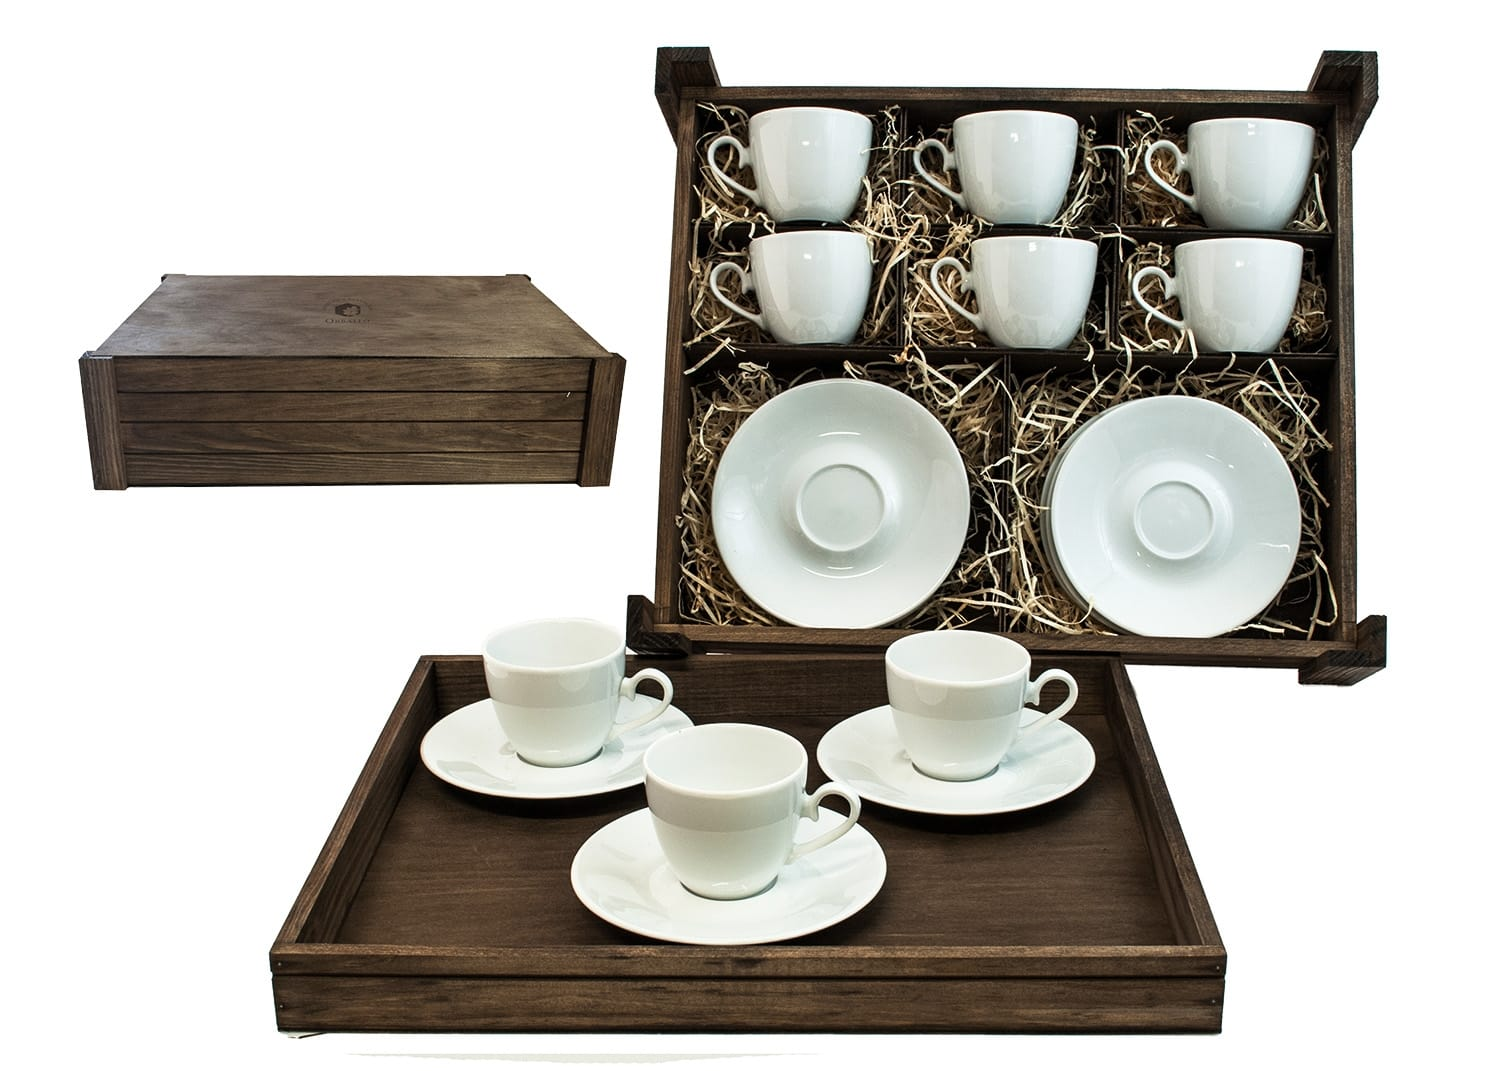 Six-Piece Tea set in wooden box. Volare desing, White collection